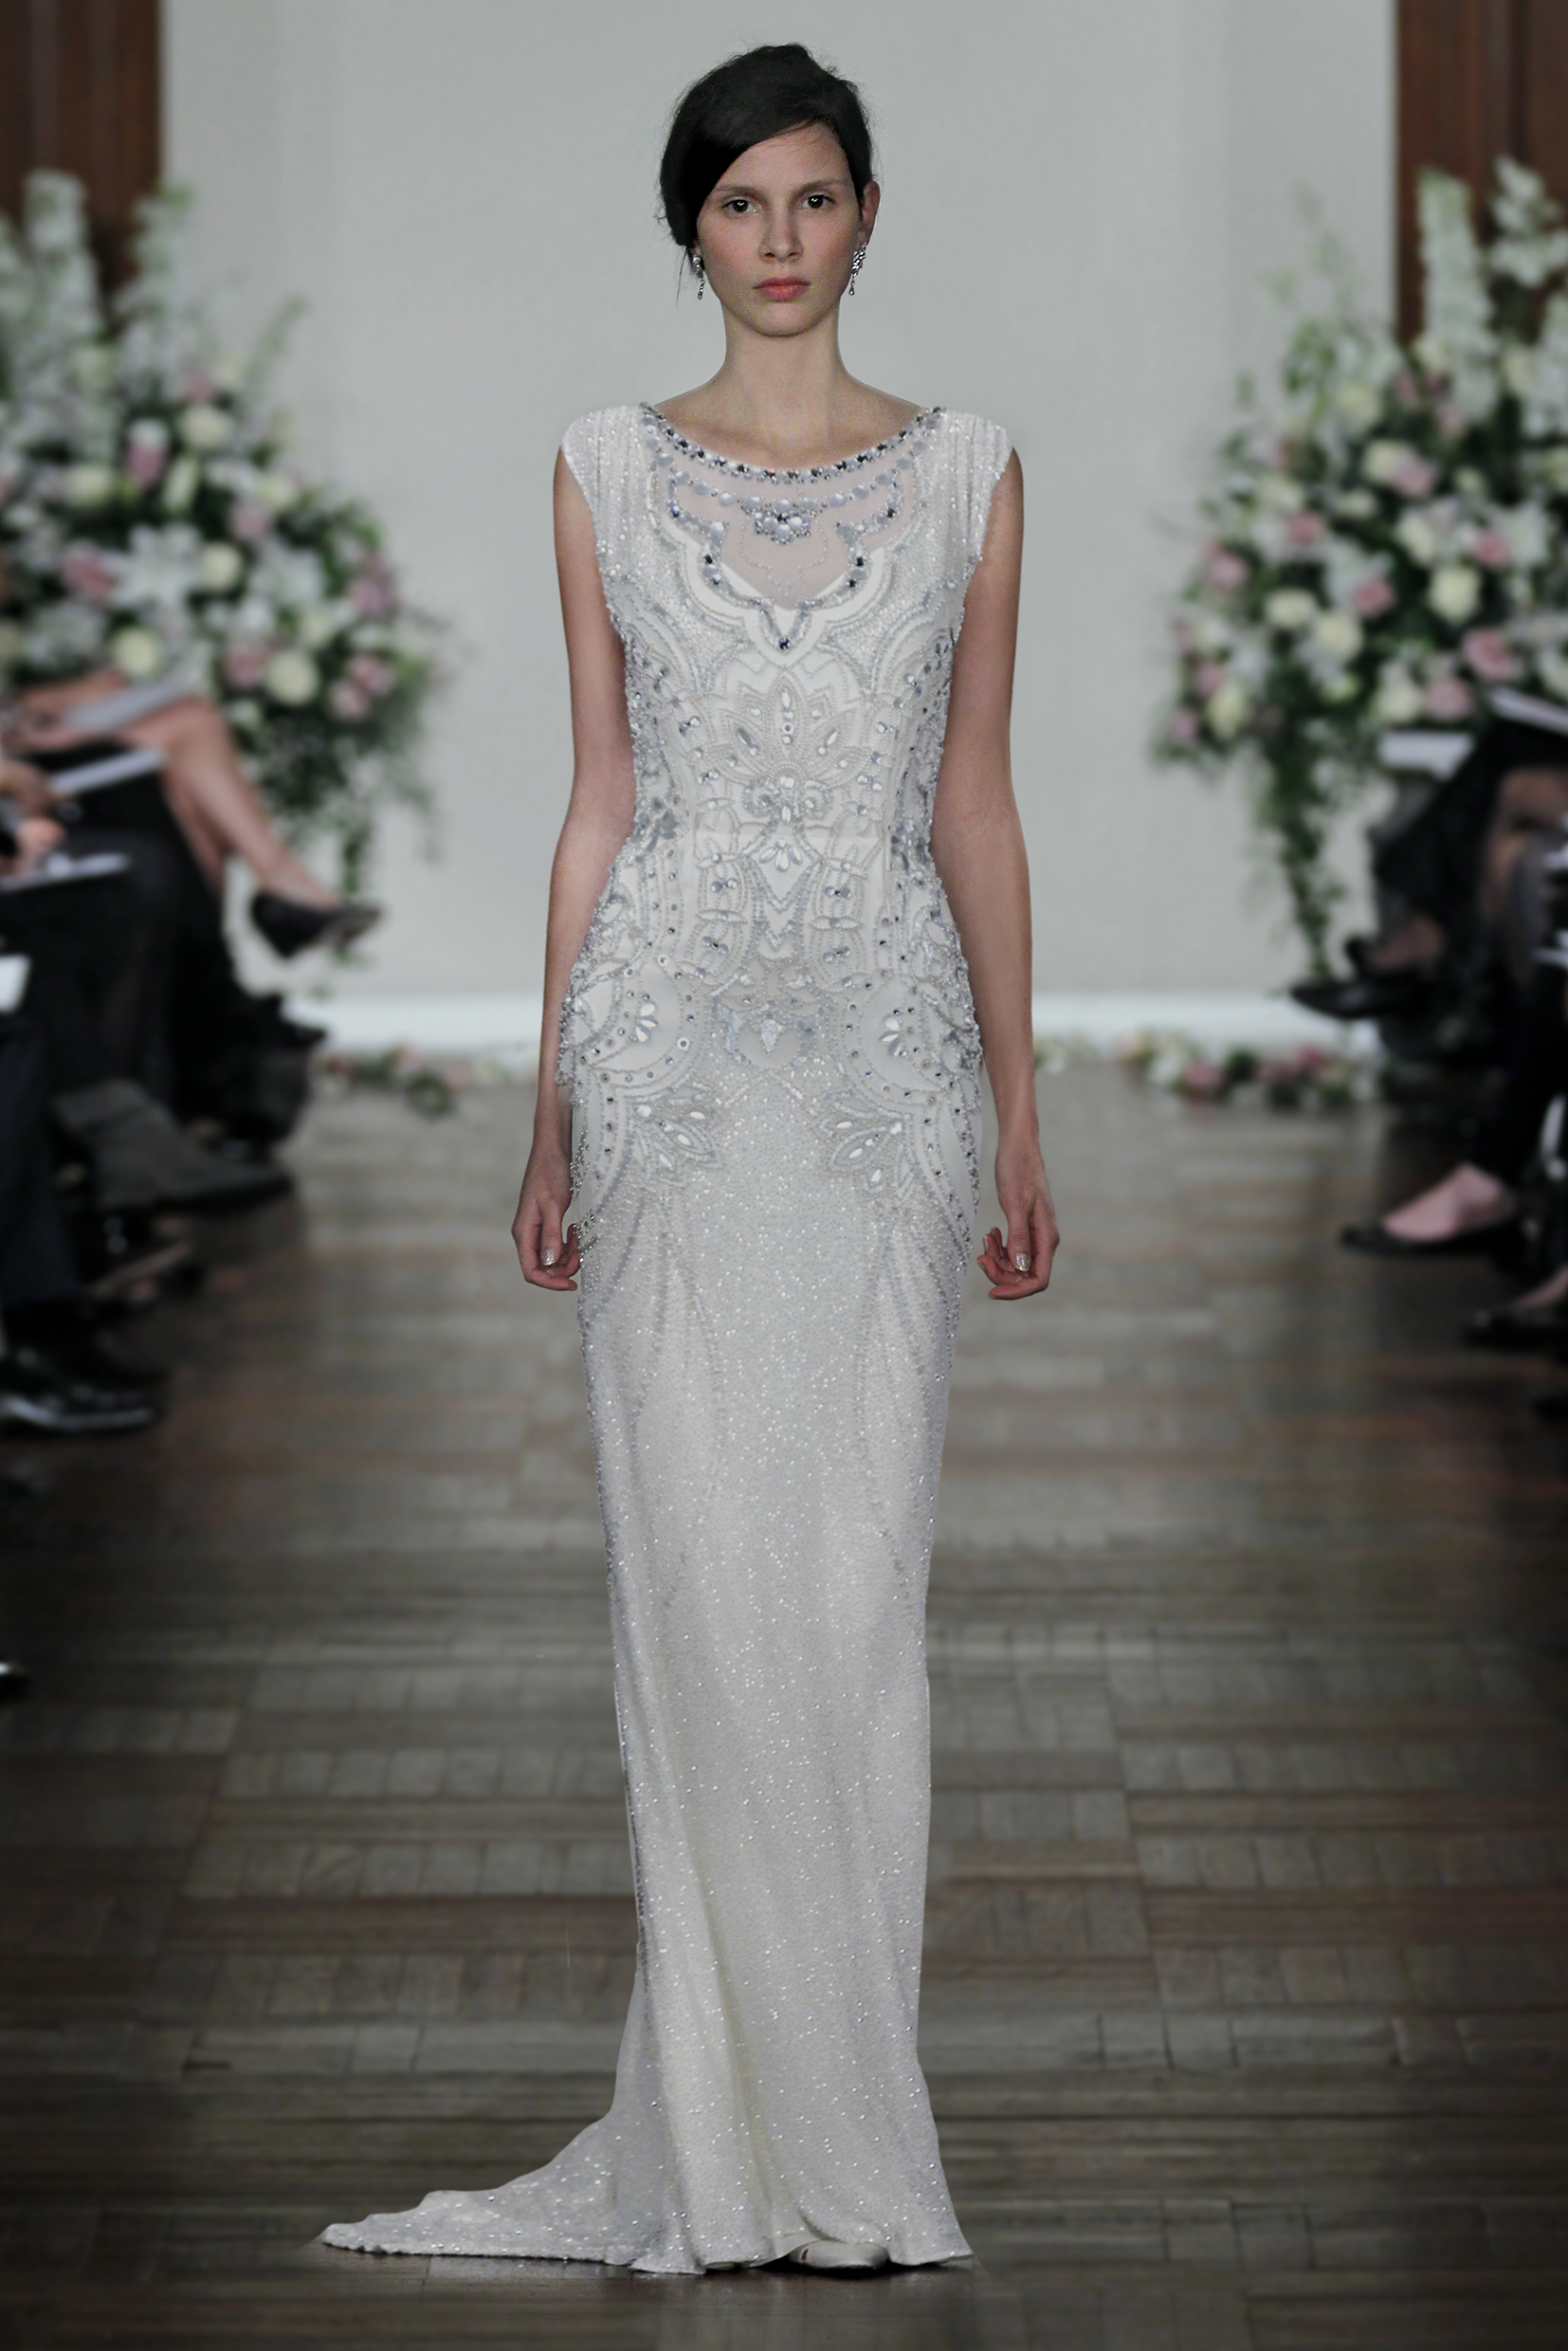 Gatsby Glamour at Little White Dress Bridal Shop — Little White ...